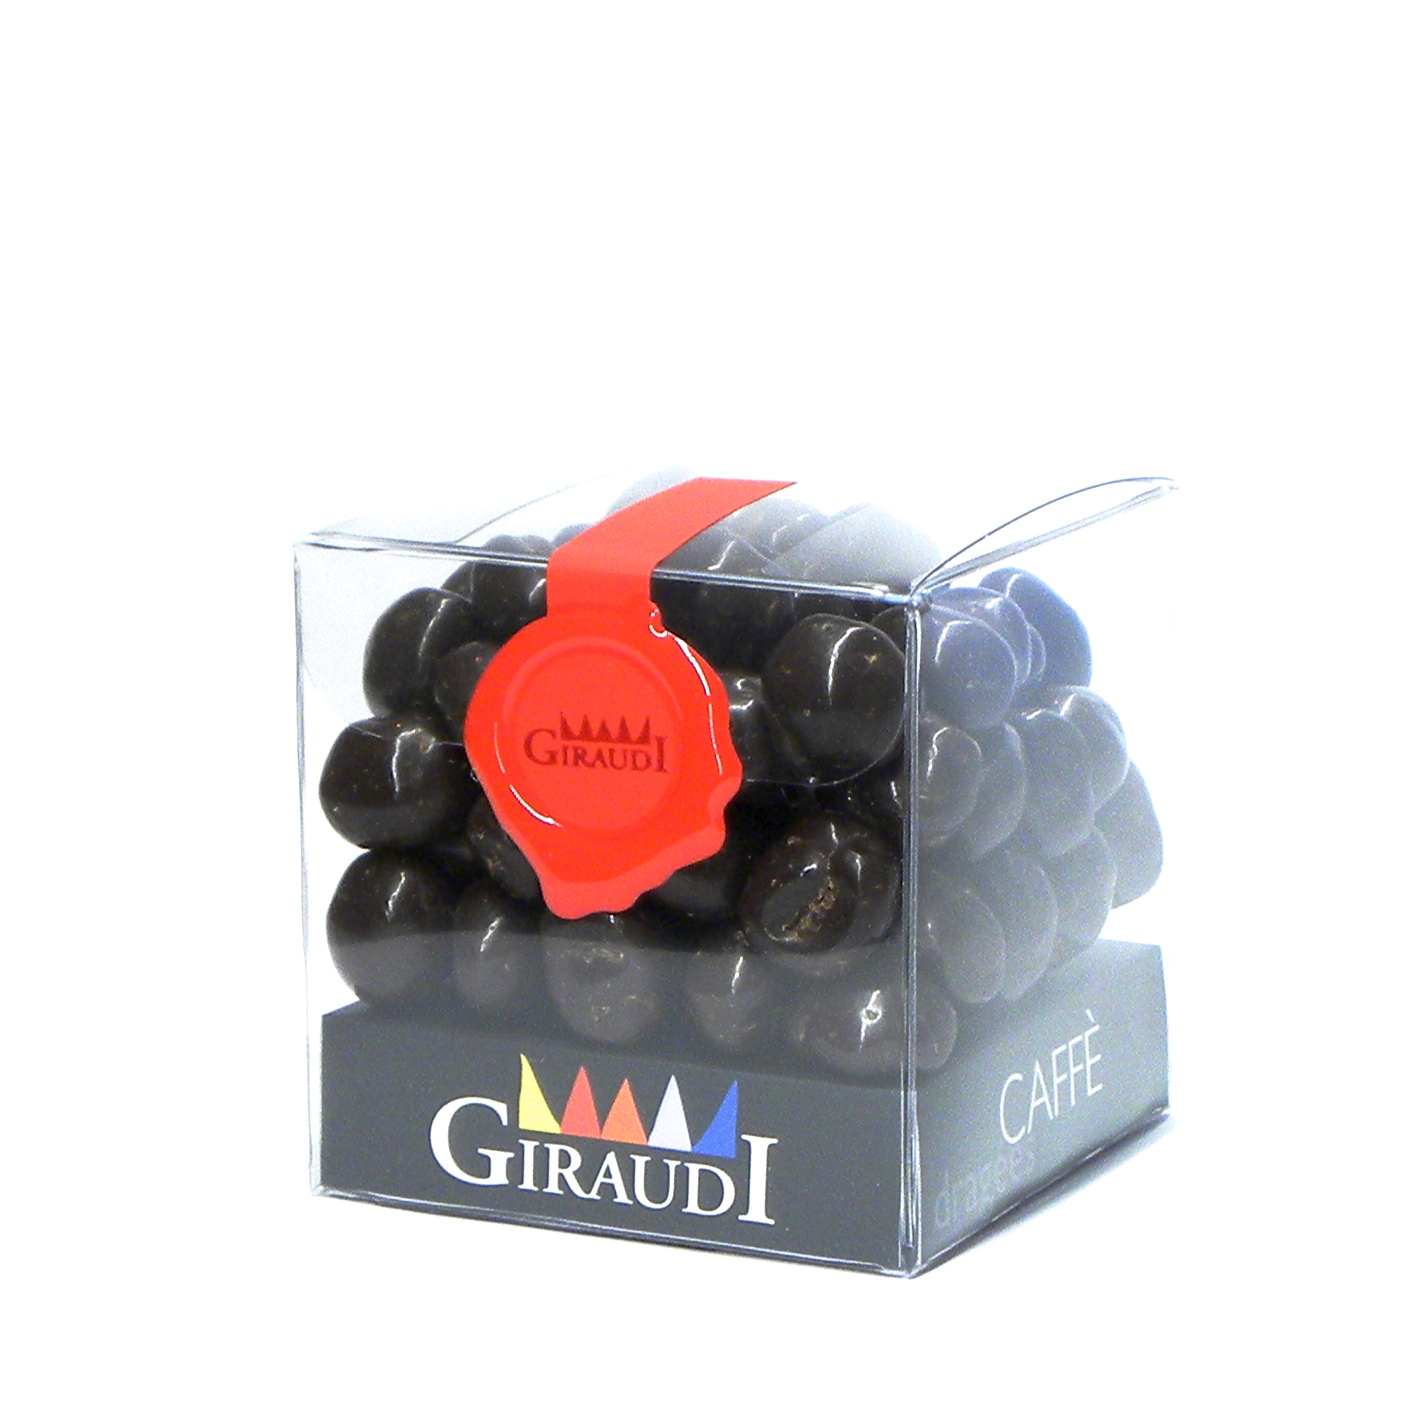 Giraudi dragees caffe – Giraudi coffee chocolate – Gustorotondo – Italian food boutique